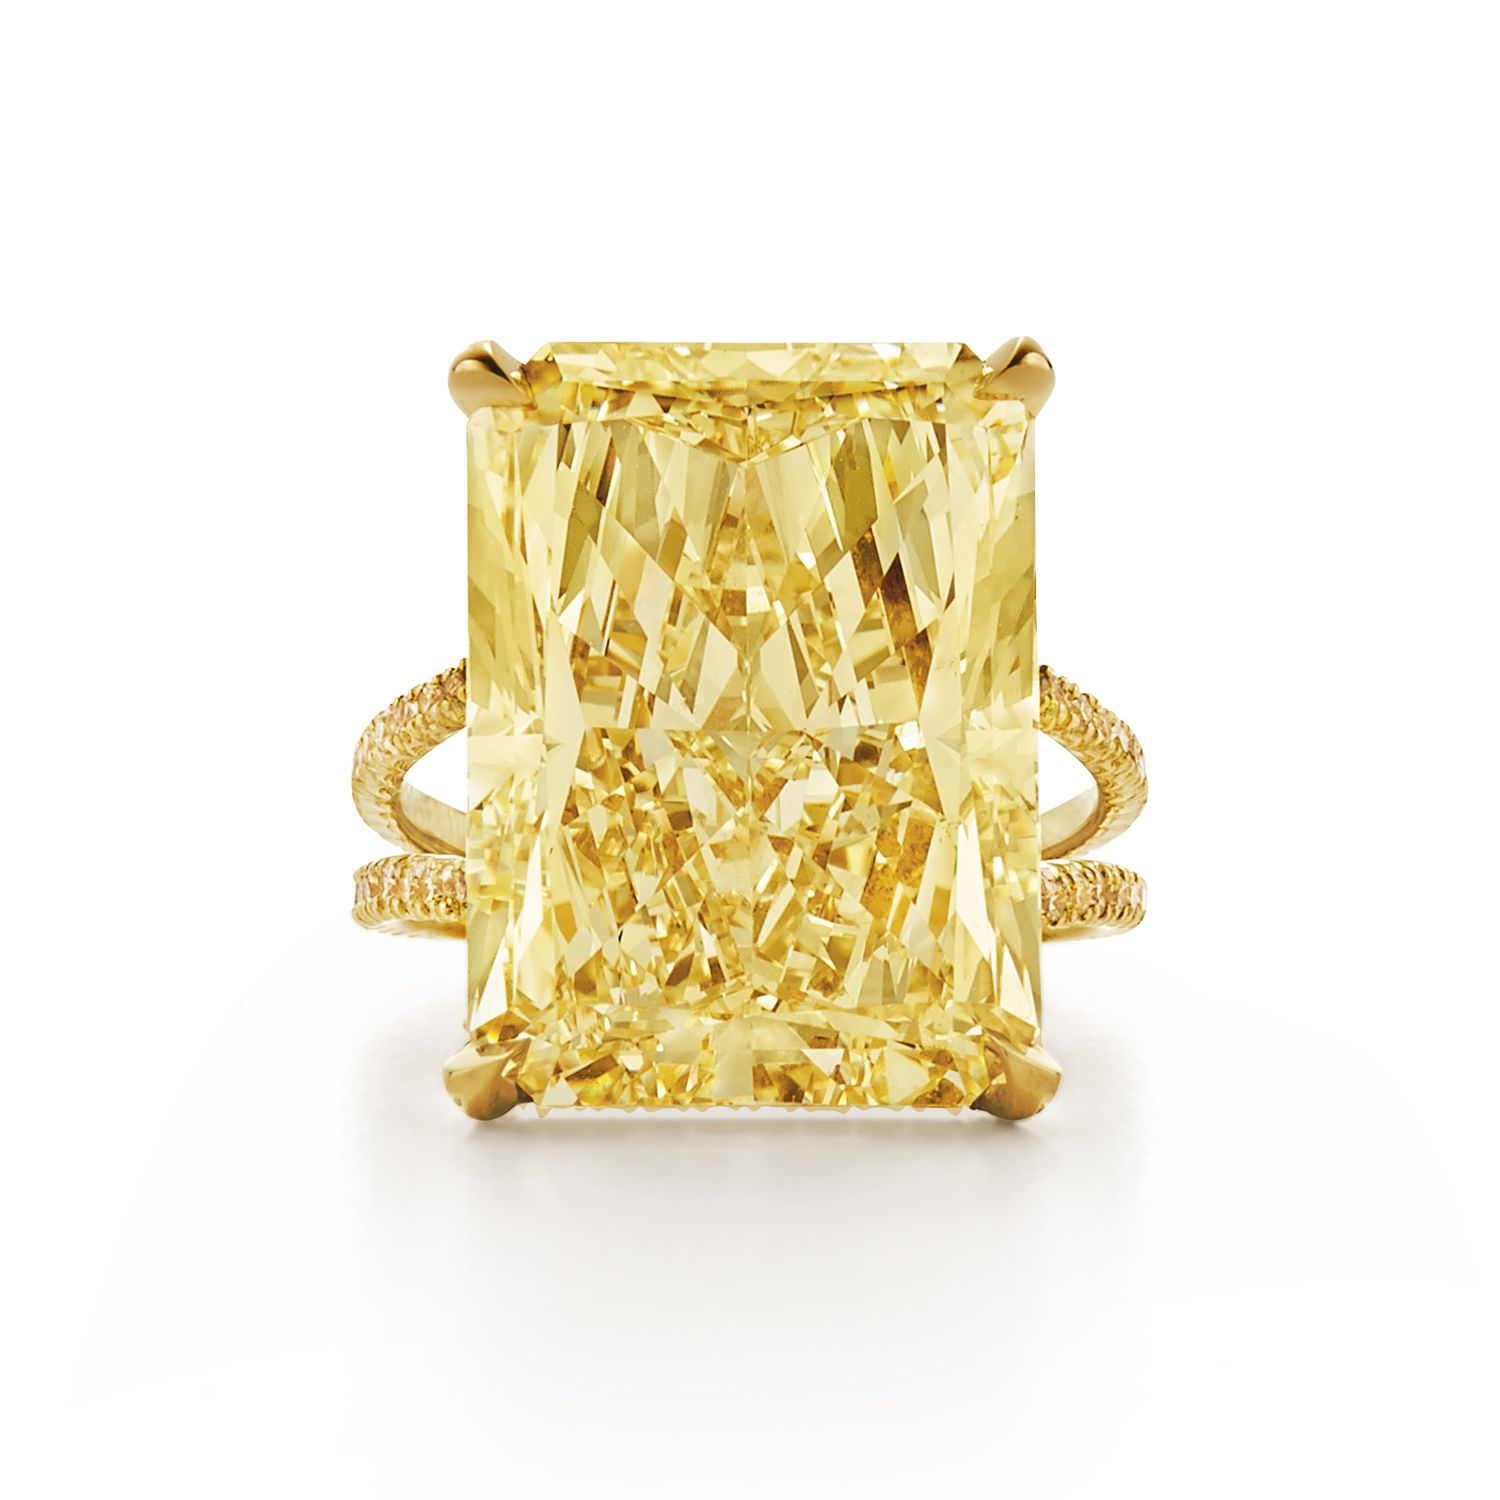 Radiant Fancy Yellow Diamond Ring With Split Yellow Diamond Intended For Radiant Yellow Diamond Rings (View 23 of 25)